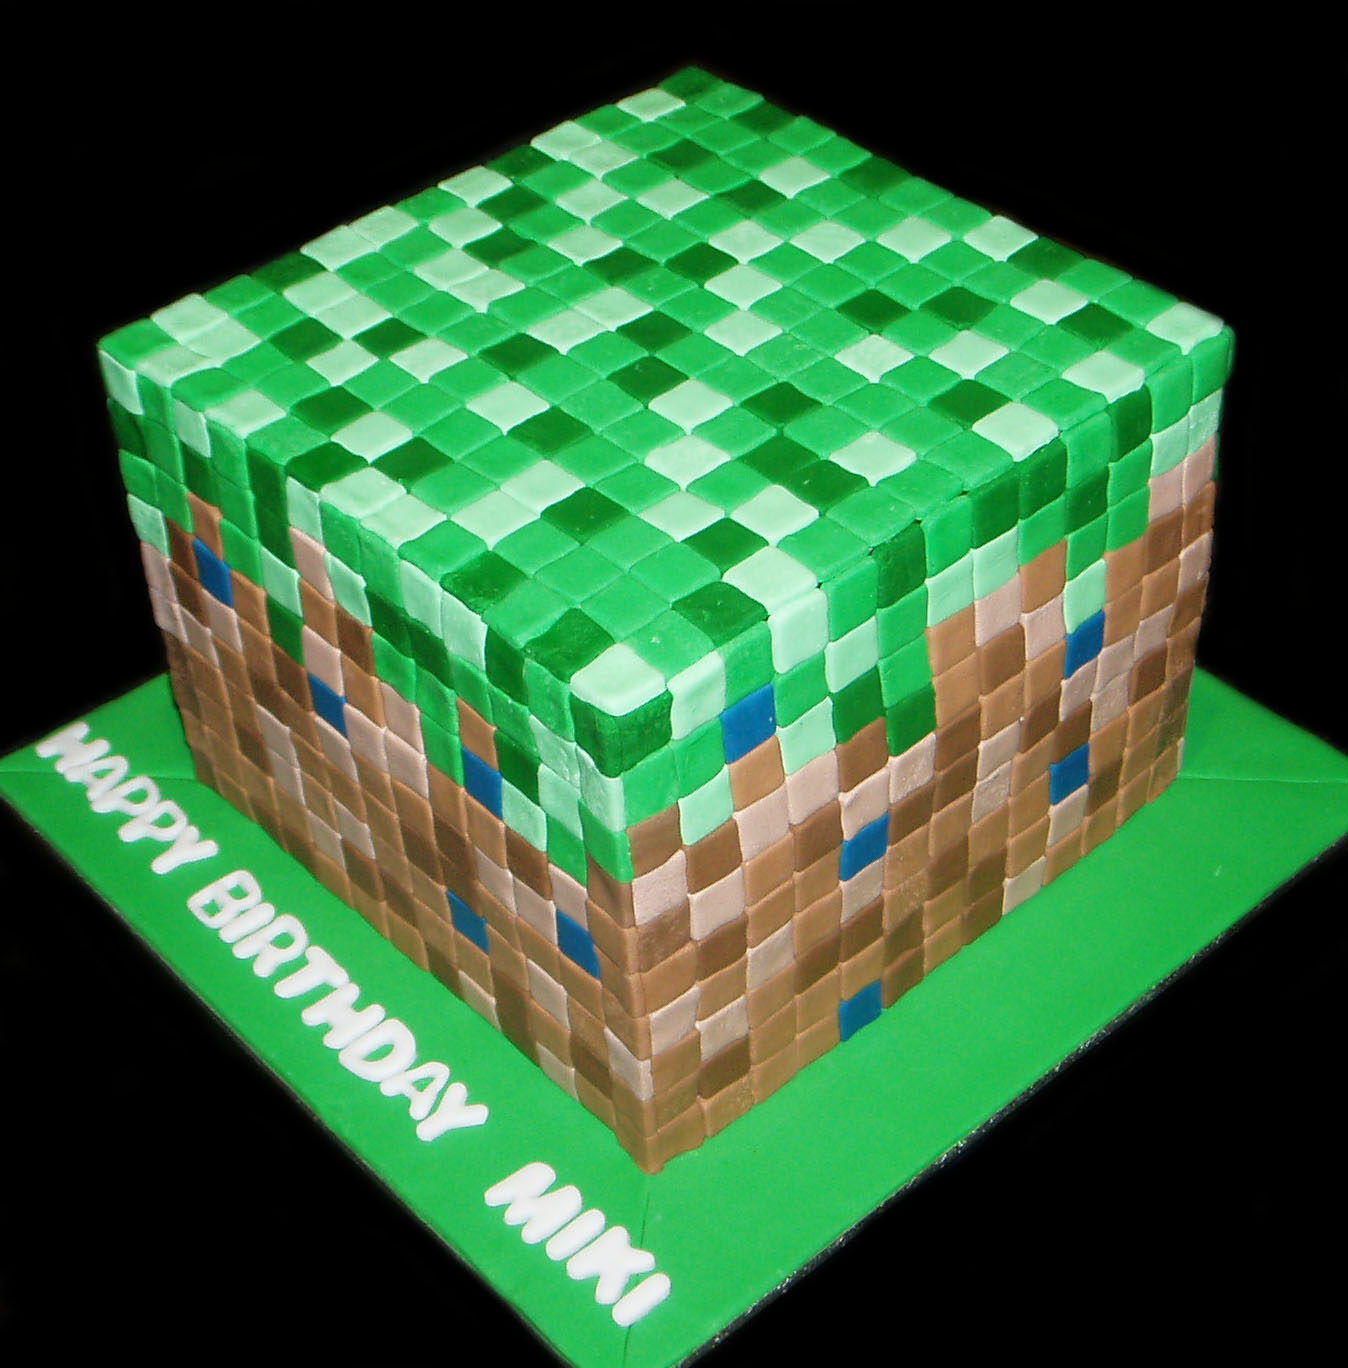 Nada's cakes: Minecraft Cake - by Nada's Cakes Canberra